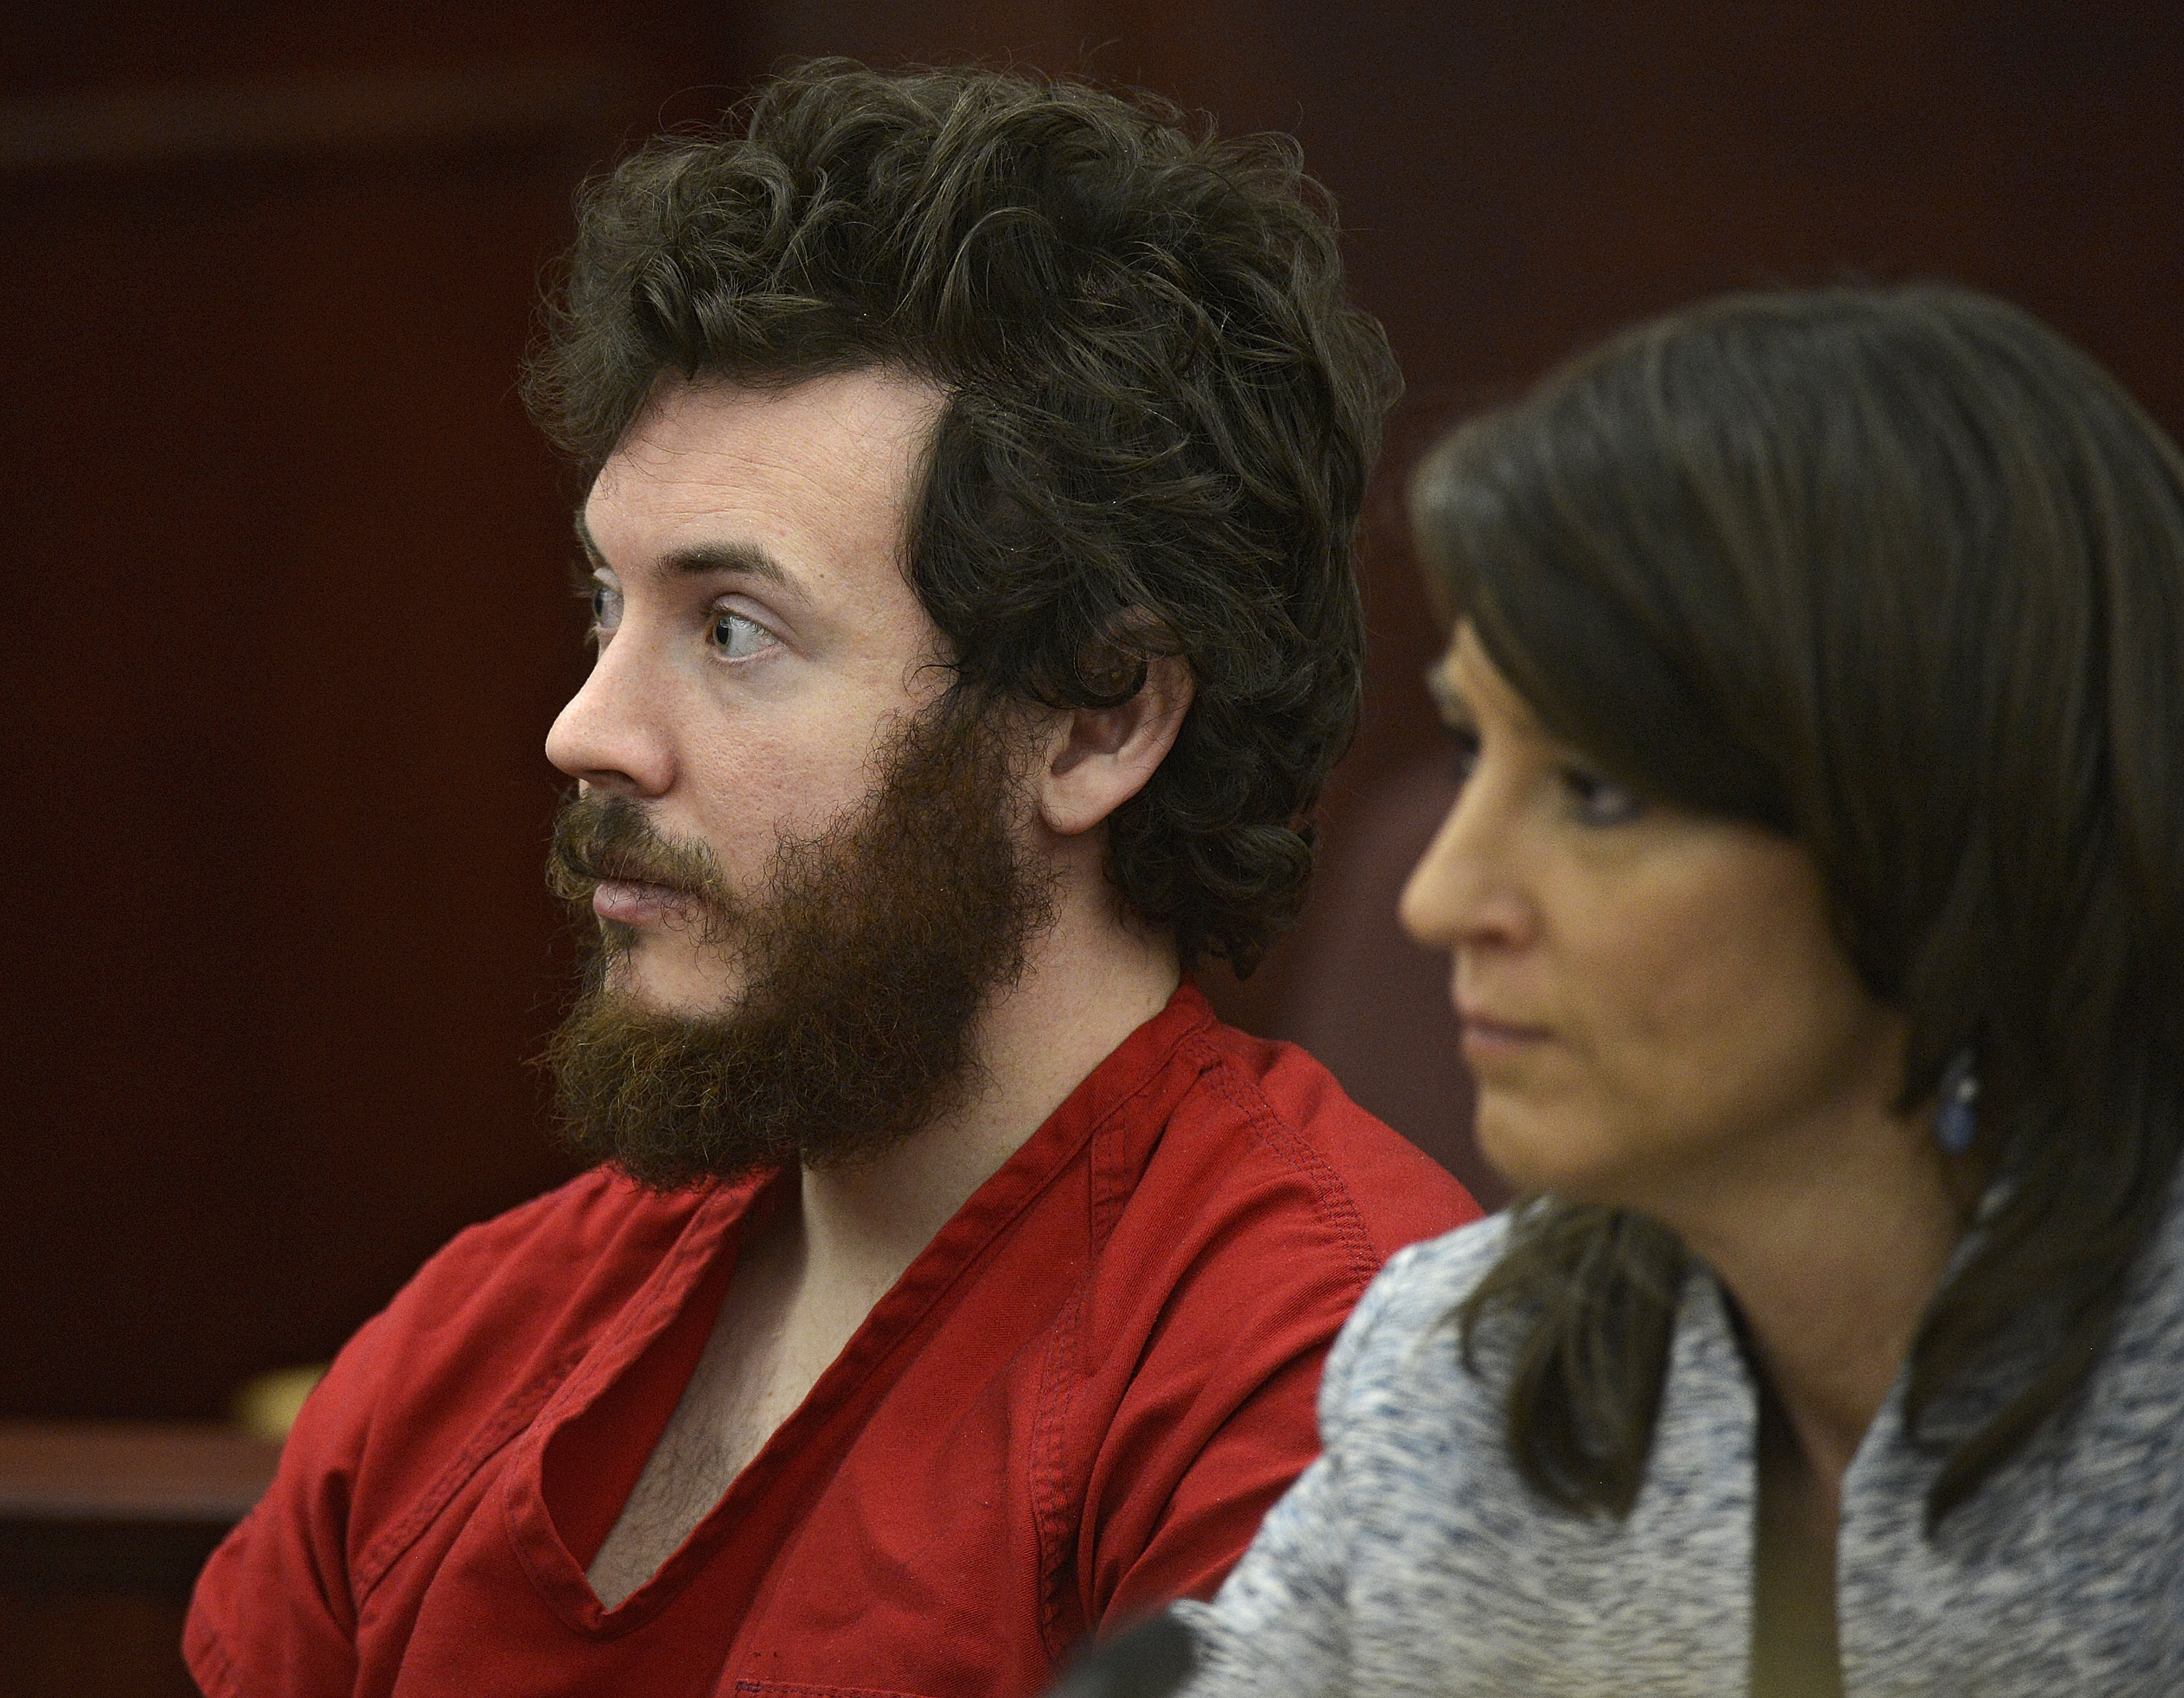 The Latest: James Holmes says God would care about shootings